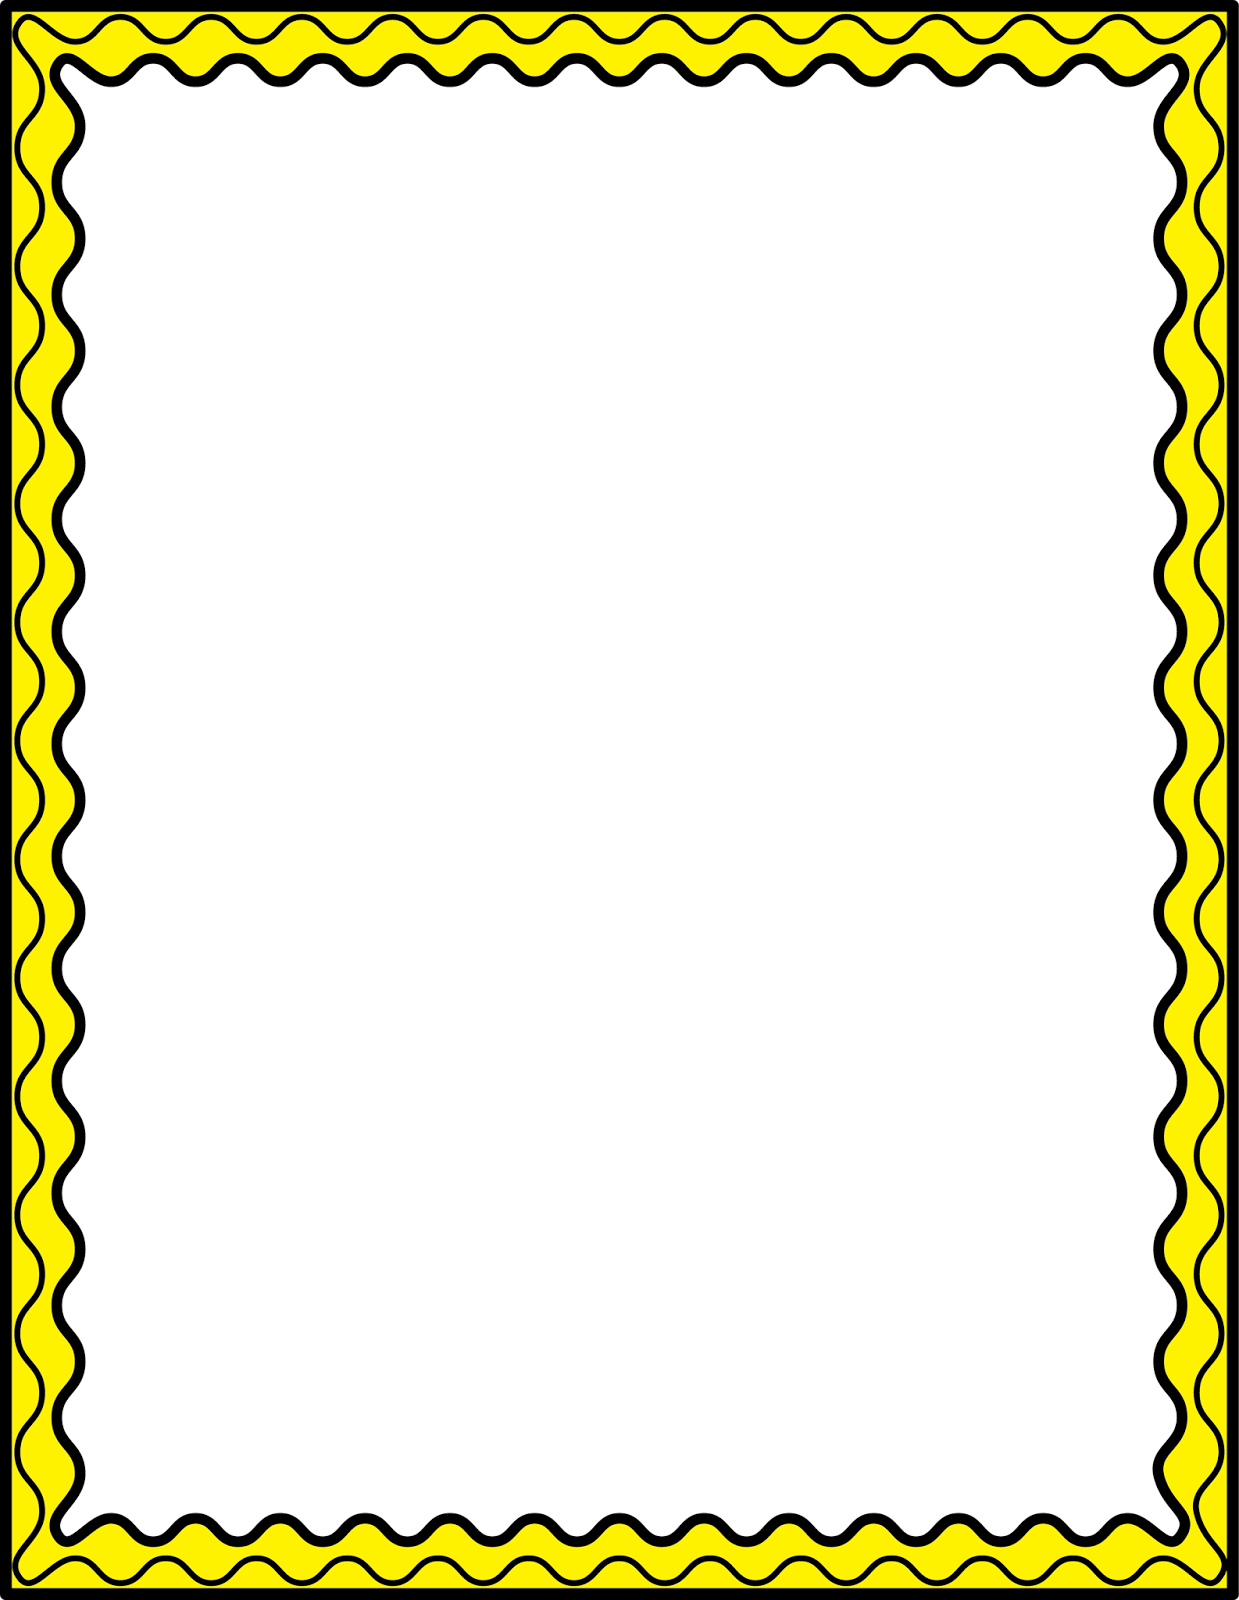 Thin border clipart vector freeuse download Image result for thin page borders | Page borders | Page ... vector freeuse download